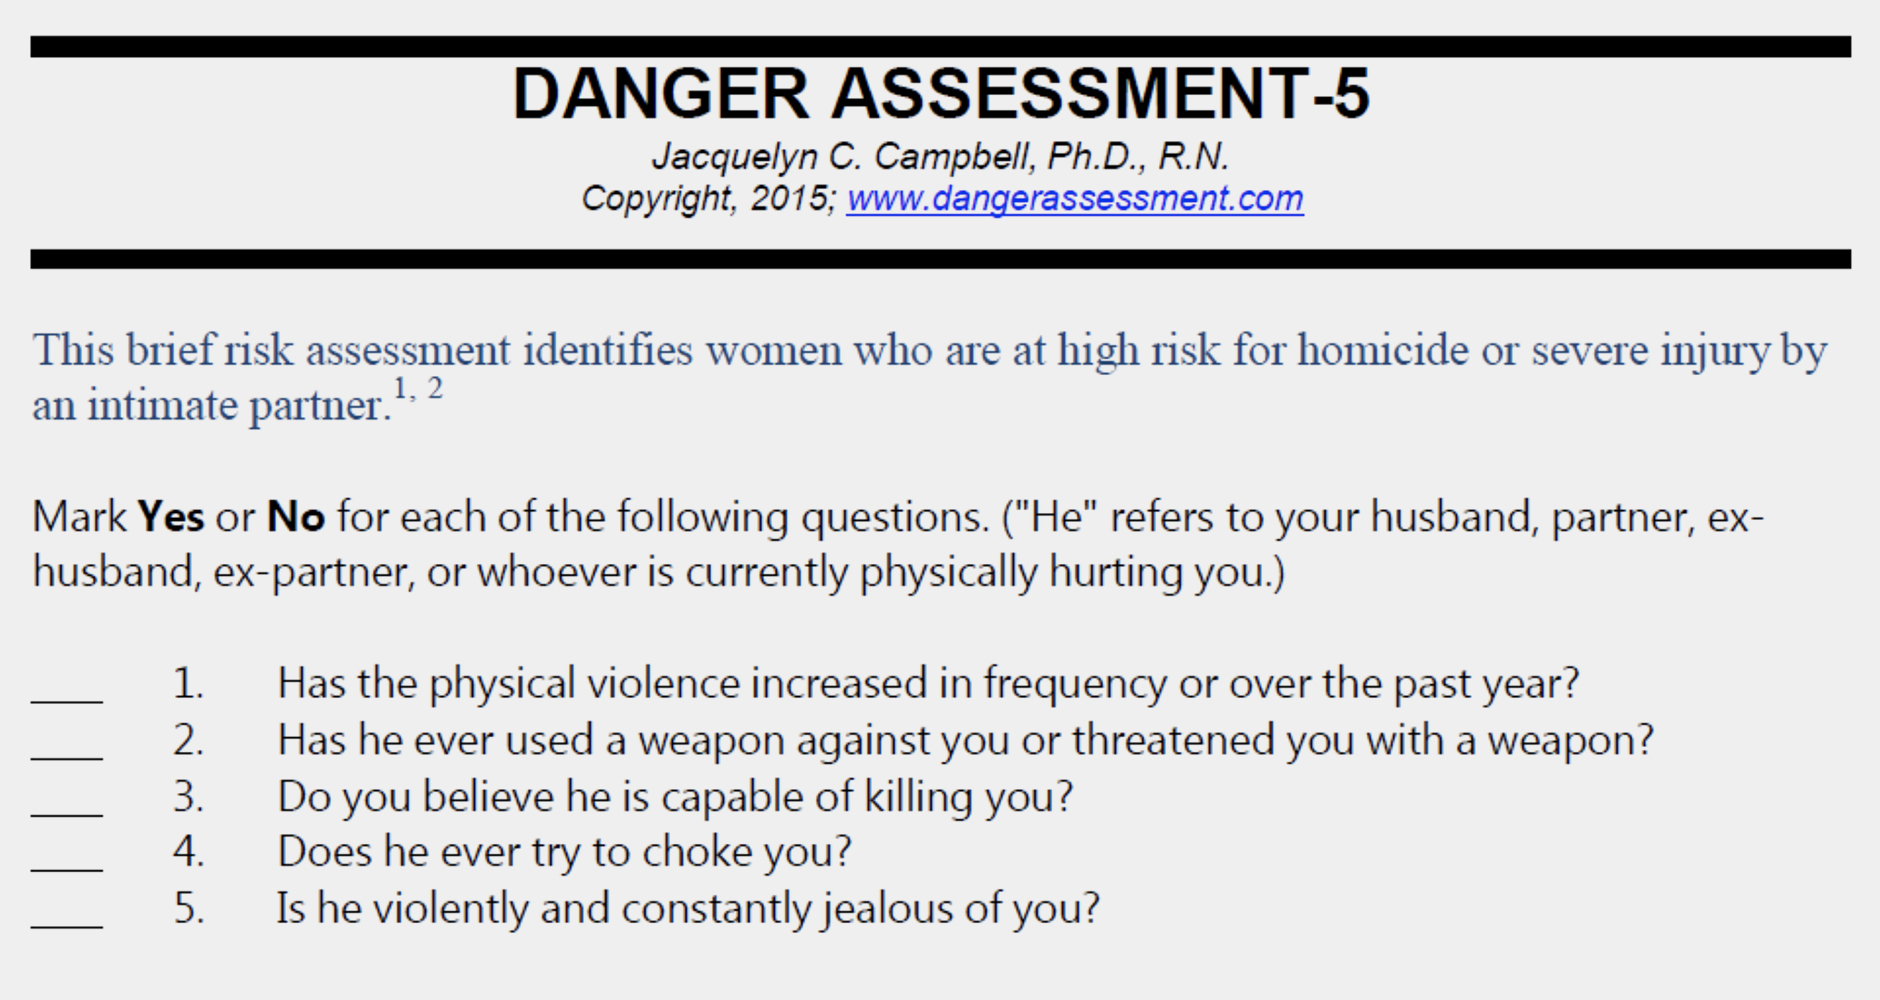 """Danger Assessment Tool: This brief risk assessment identifies women who are at high risk for homicide or severe injury by an intimate partner. Mark """"Yes"""" or """"No"""" for each of the following questions. (""""He"""" refers to your husband, partner, exhusband, ex-partner, or whoever is currently physically hurting you.) 1. Has the physical violence increased in frequency or over the past year? 2. Has he ever used a weapon against you or threatened you with a weapon? 3. Do you believe he is capable of killing you? 4. Does he ever try to choke you? 5. Is he violently and constantly jealous of you?"""